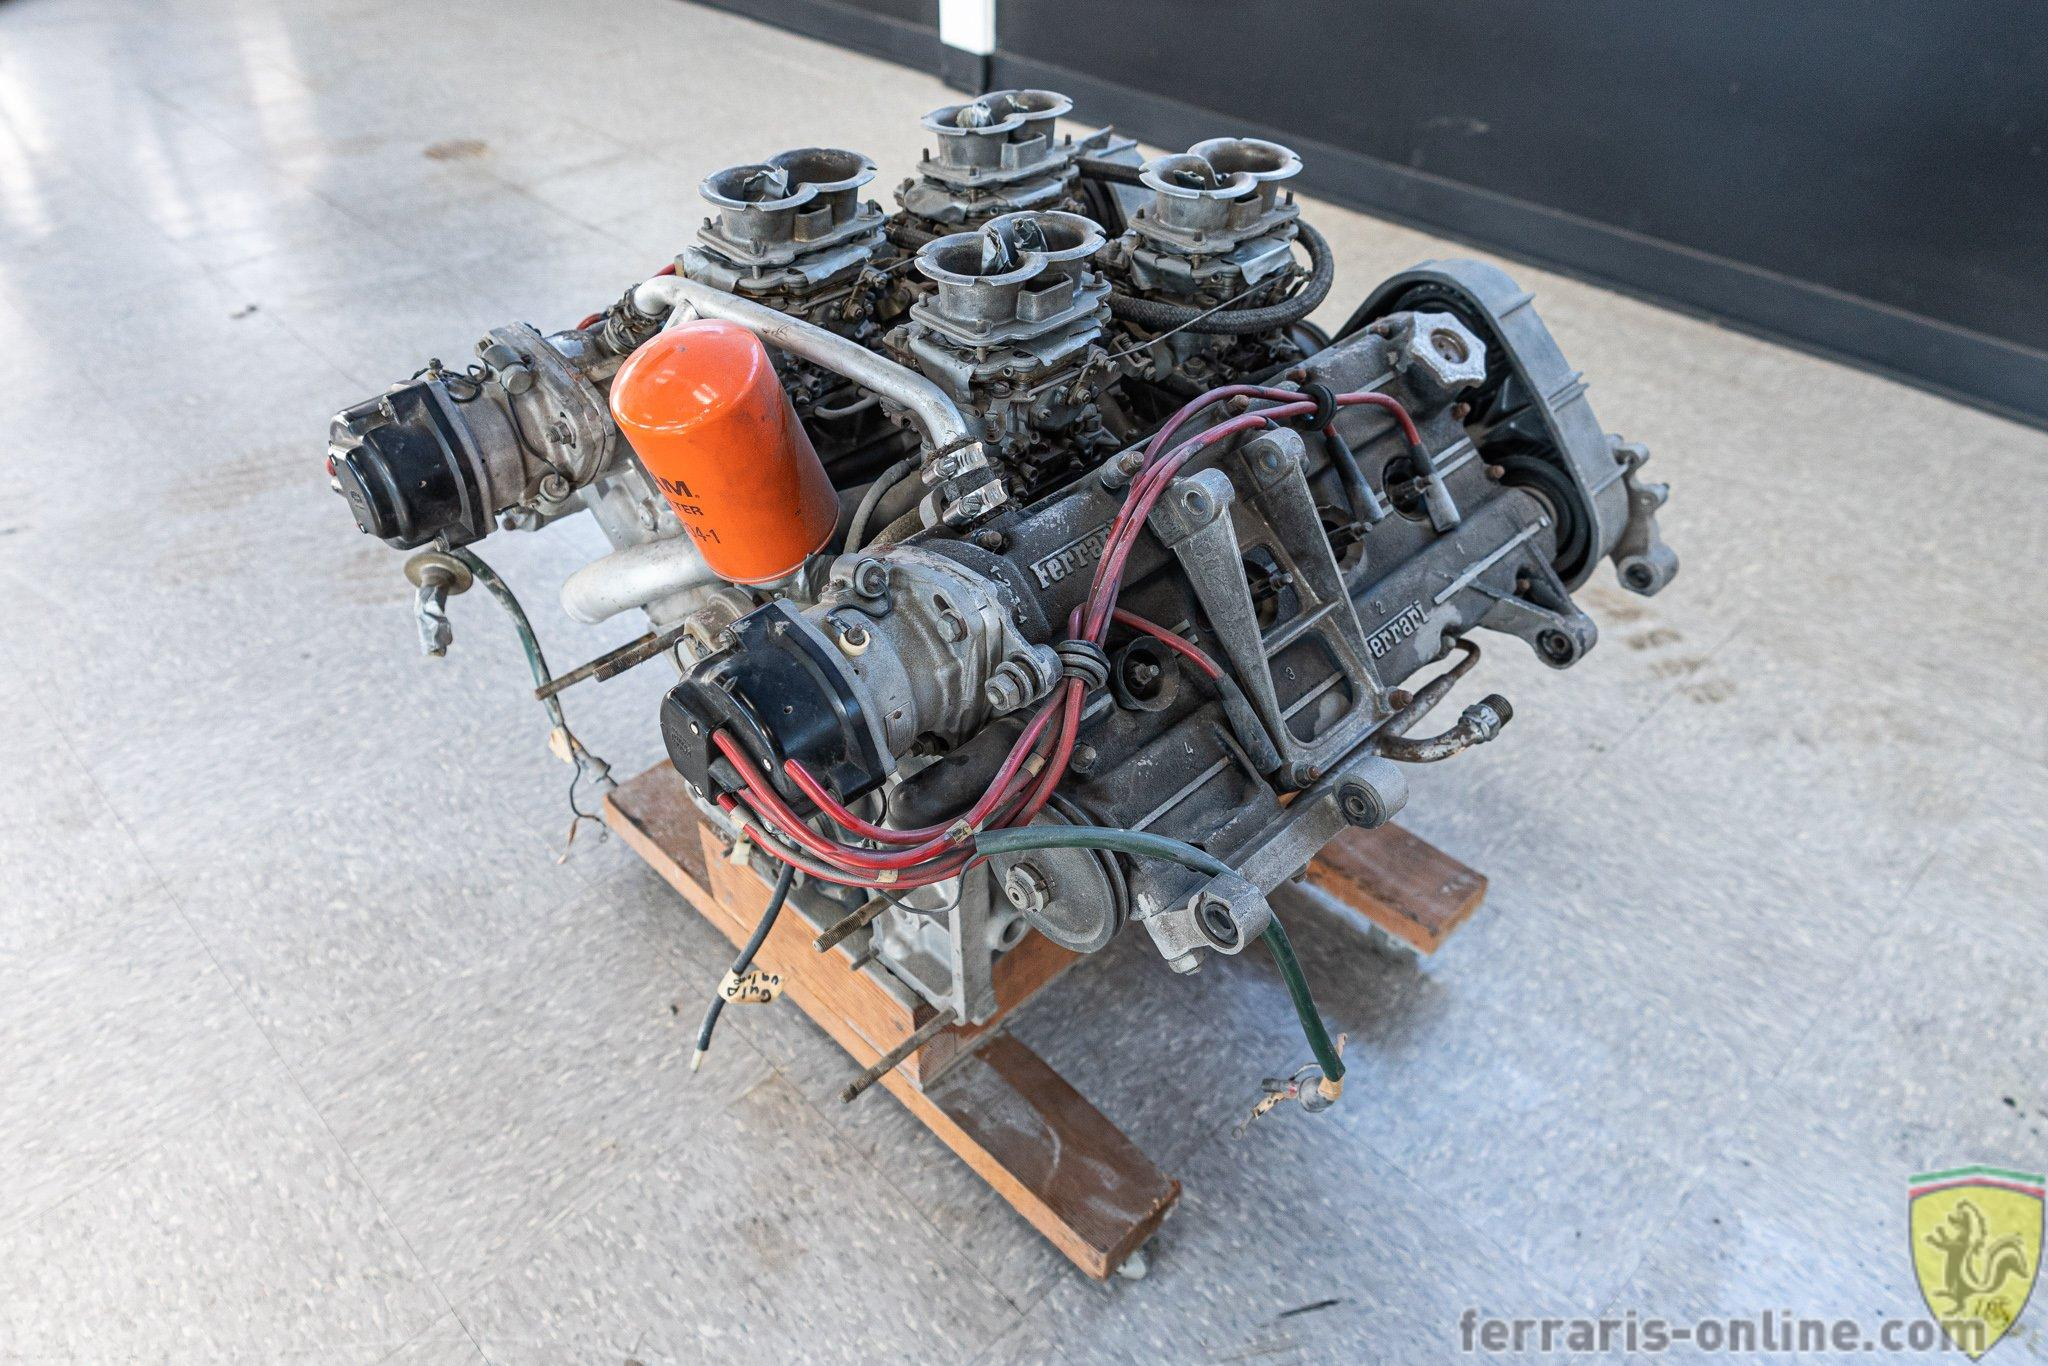 1977 Ferrari carbureted 308 engine tipo F106A #02570